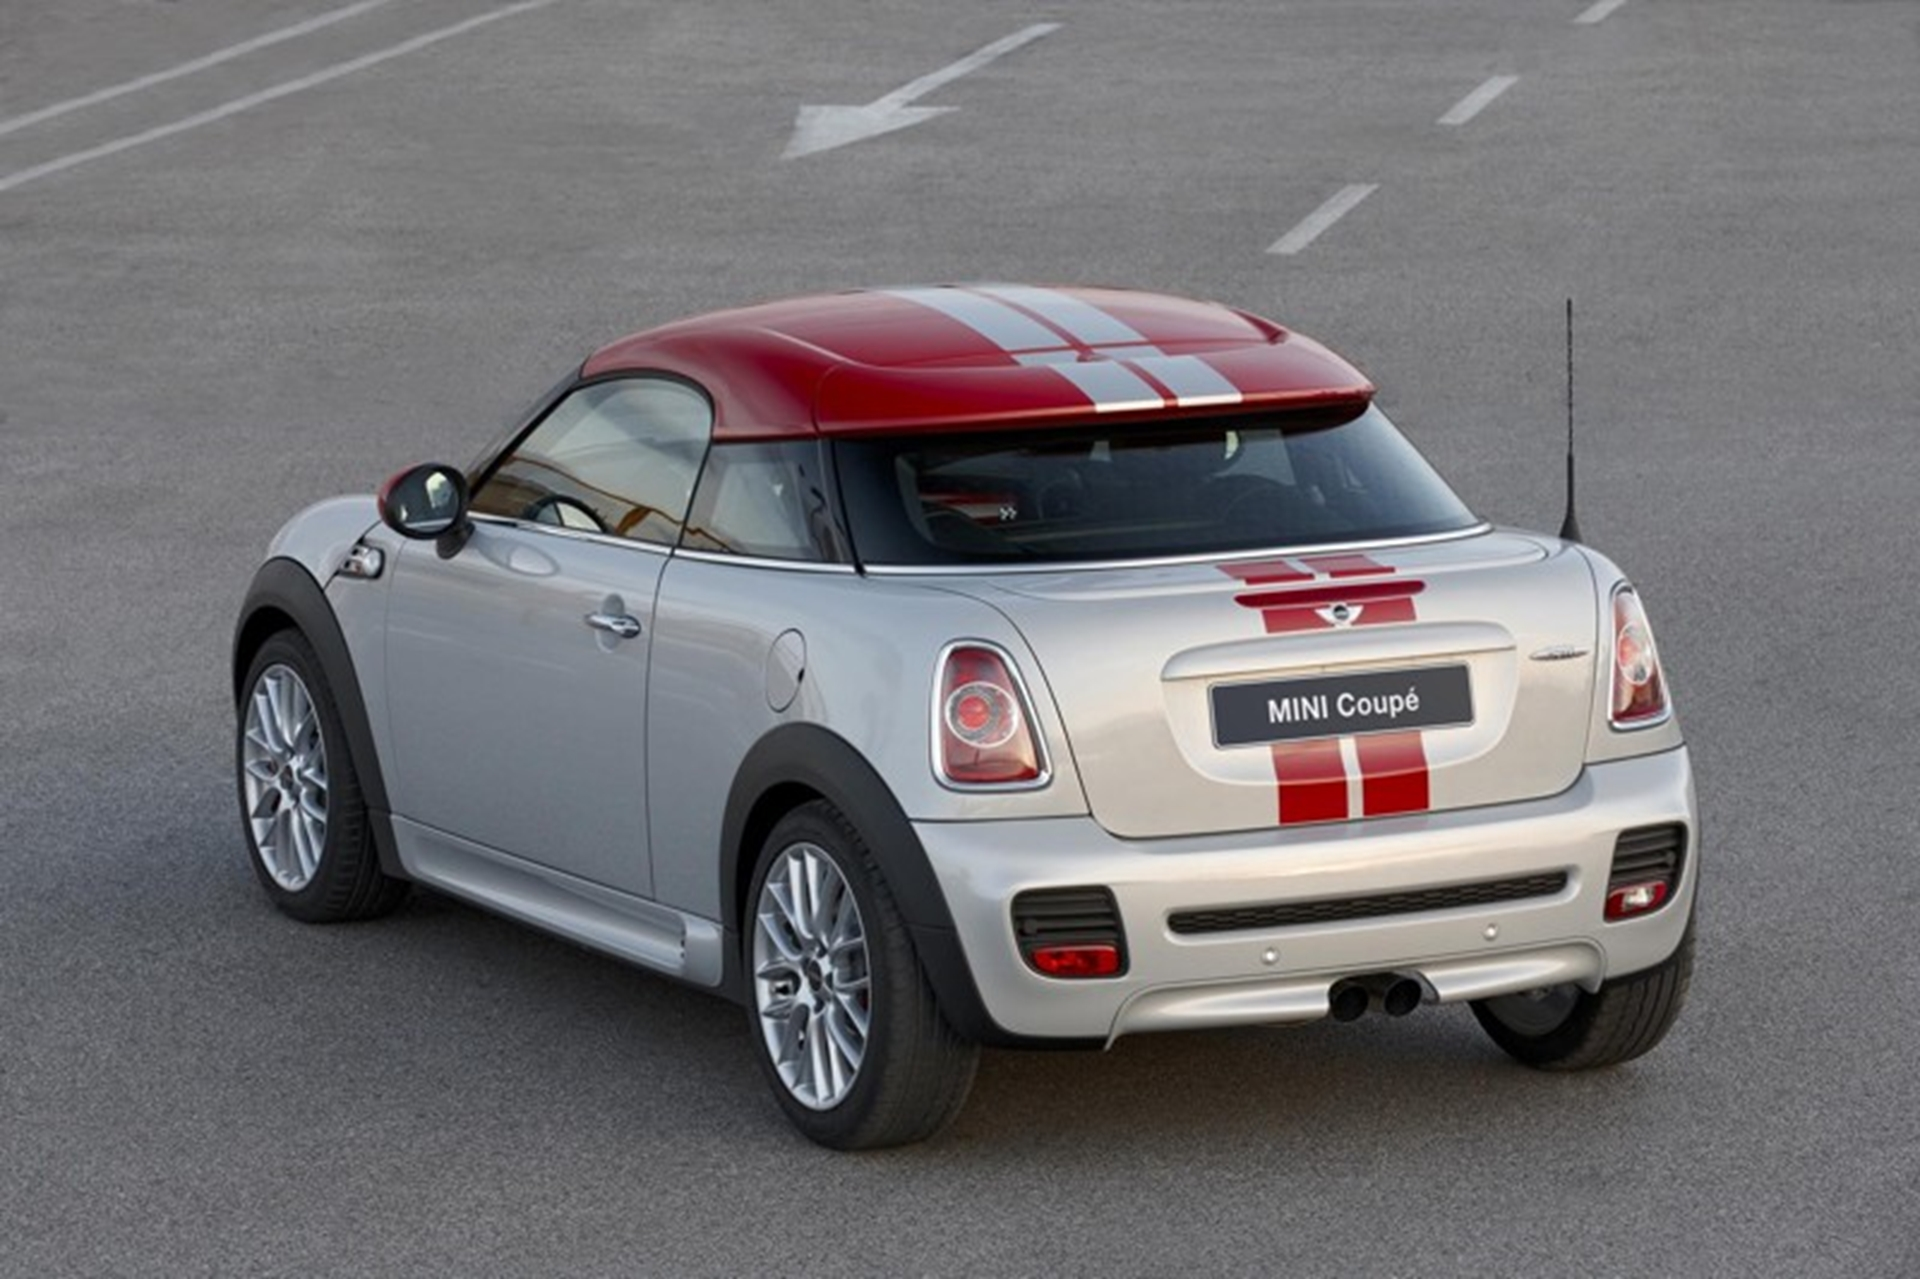 Mini Coupe 2011 Side Rear View